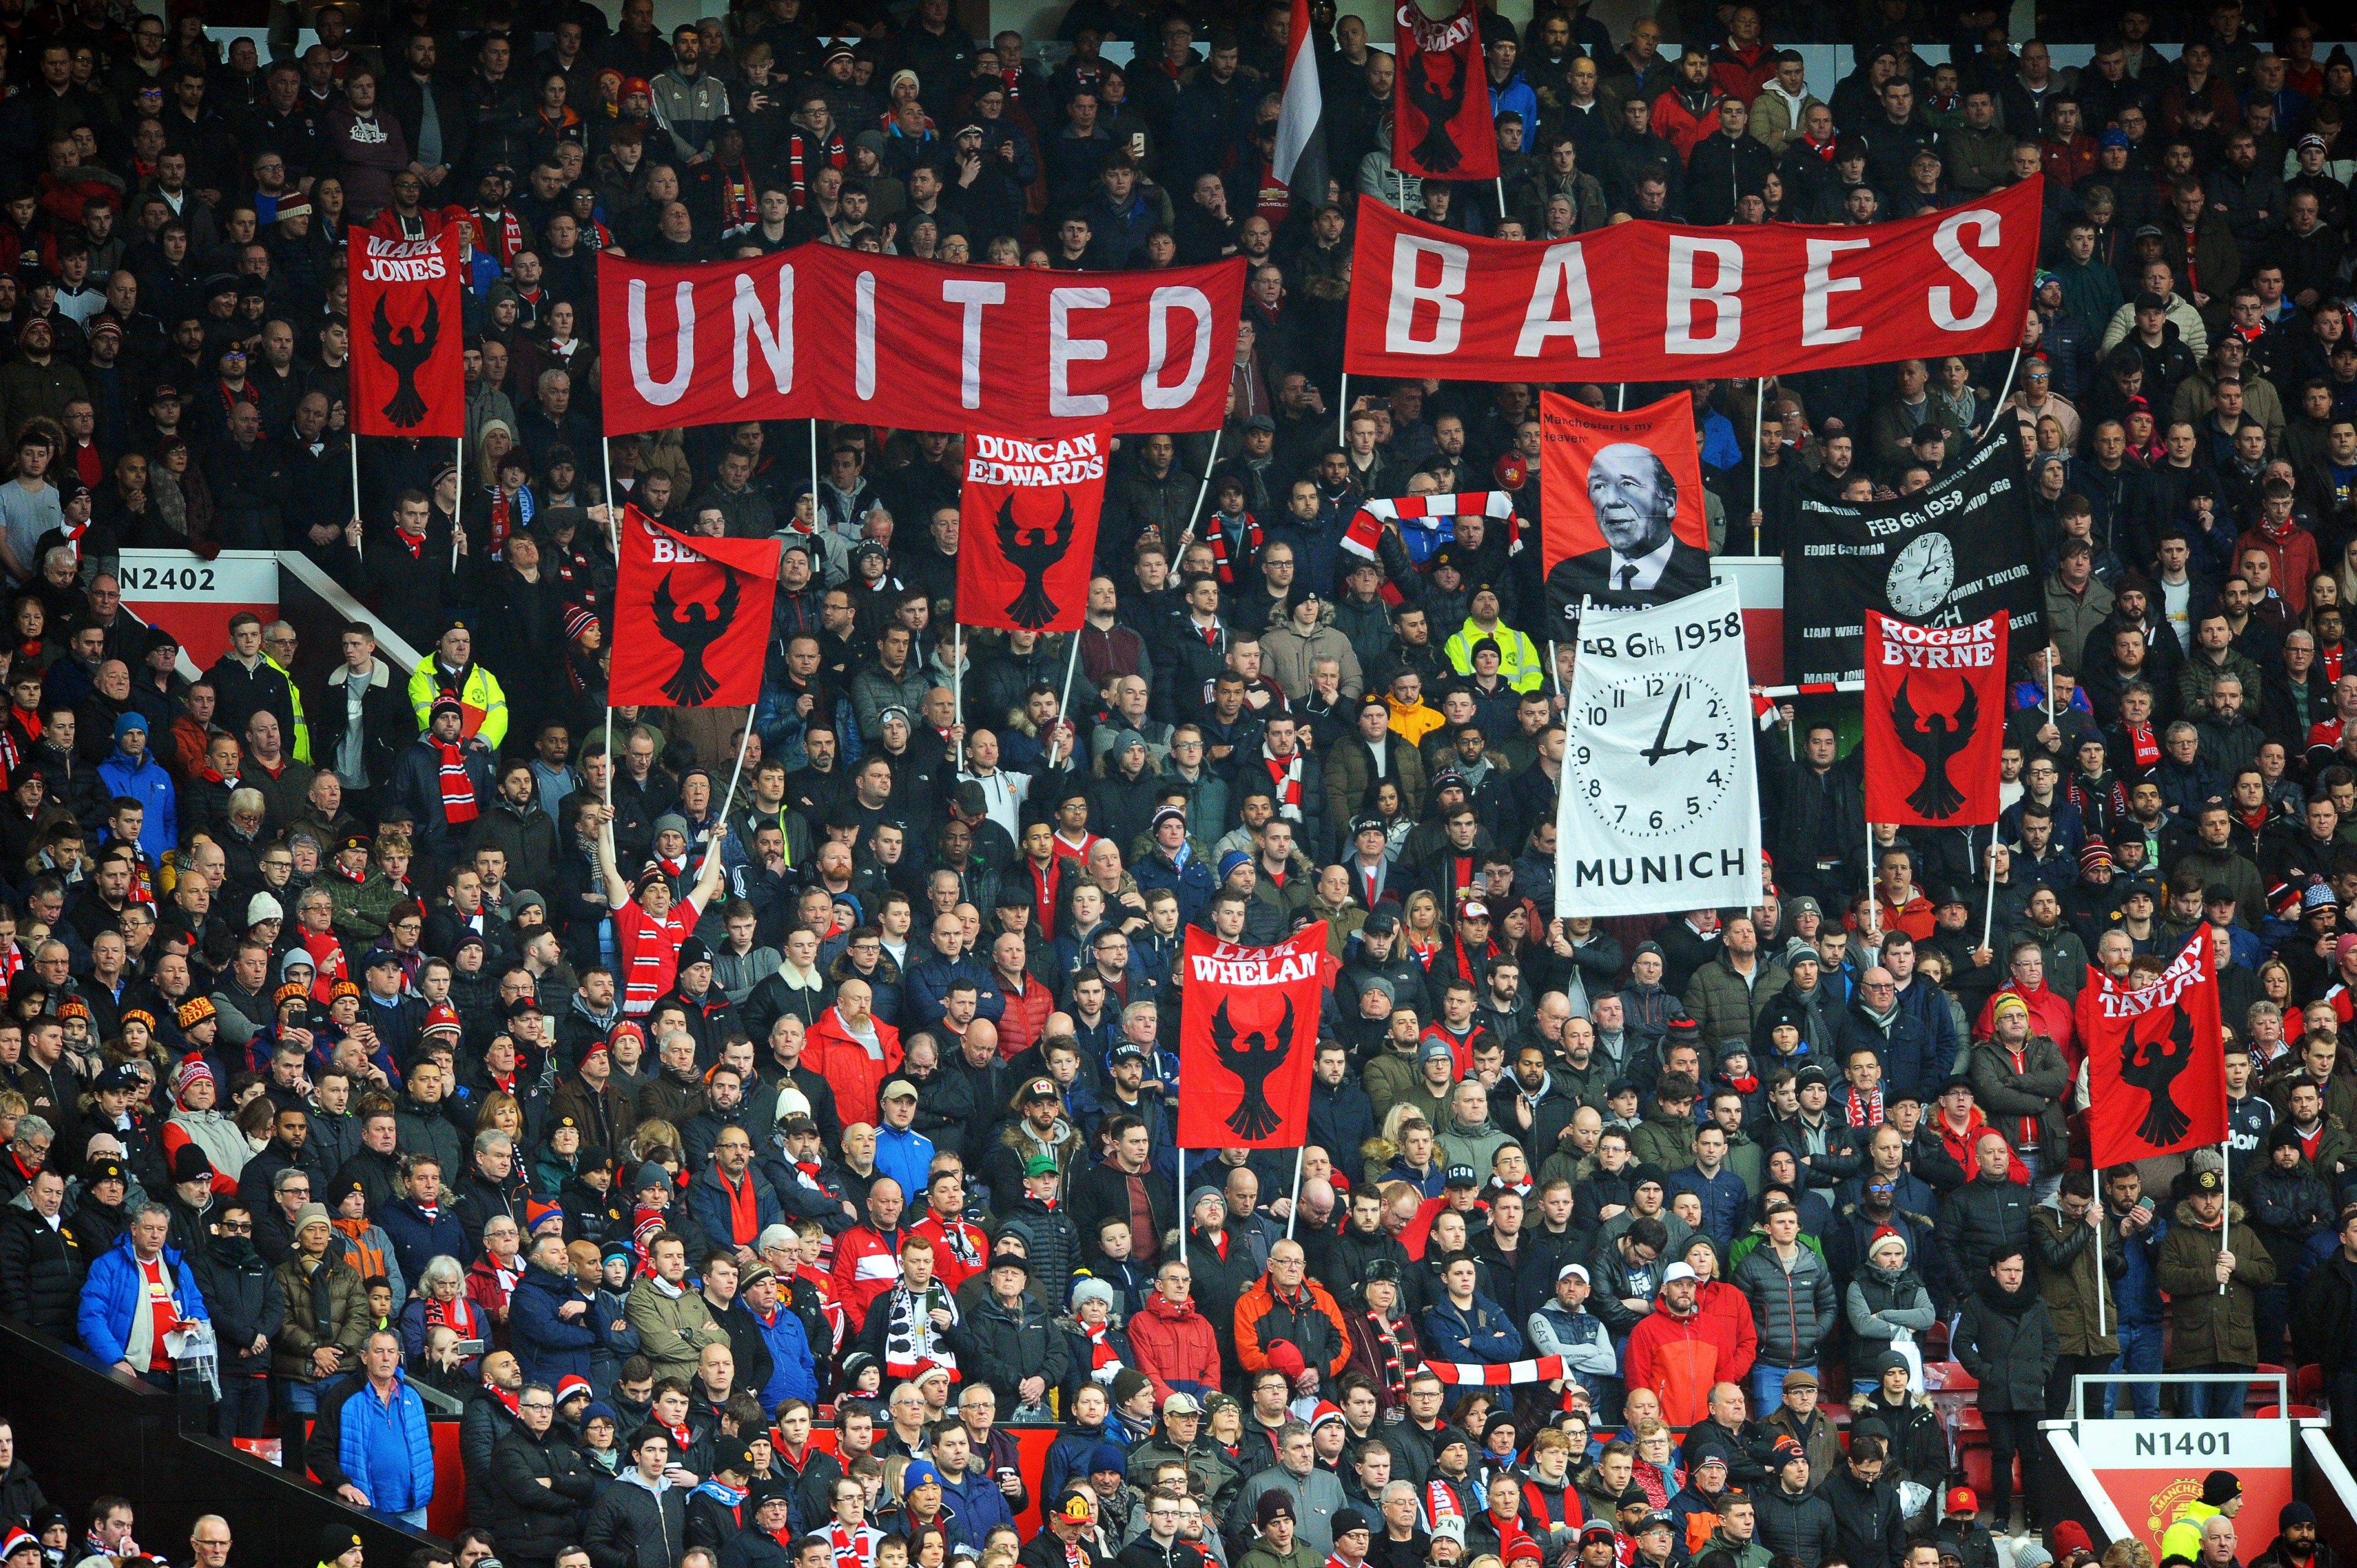 Manchester United fans paid tribute to the Busby Babes at Old Trafford